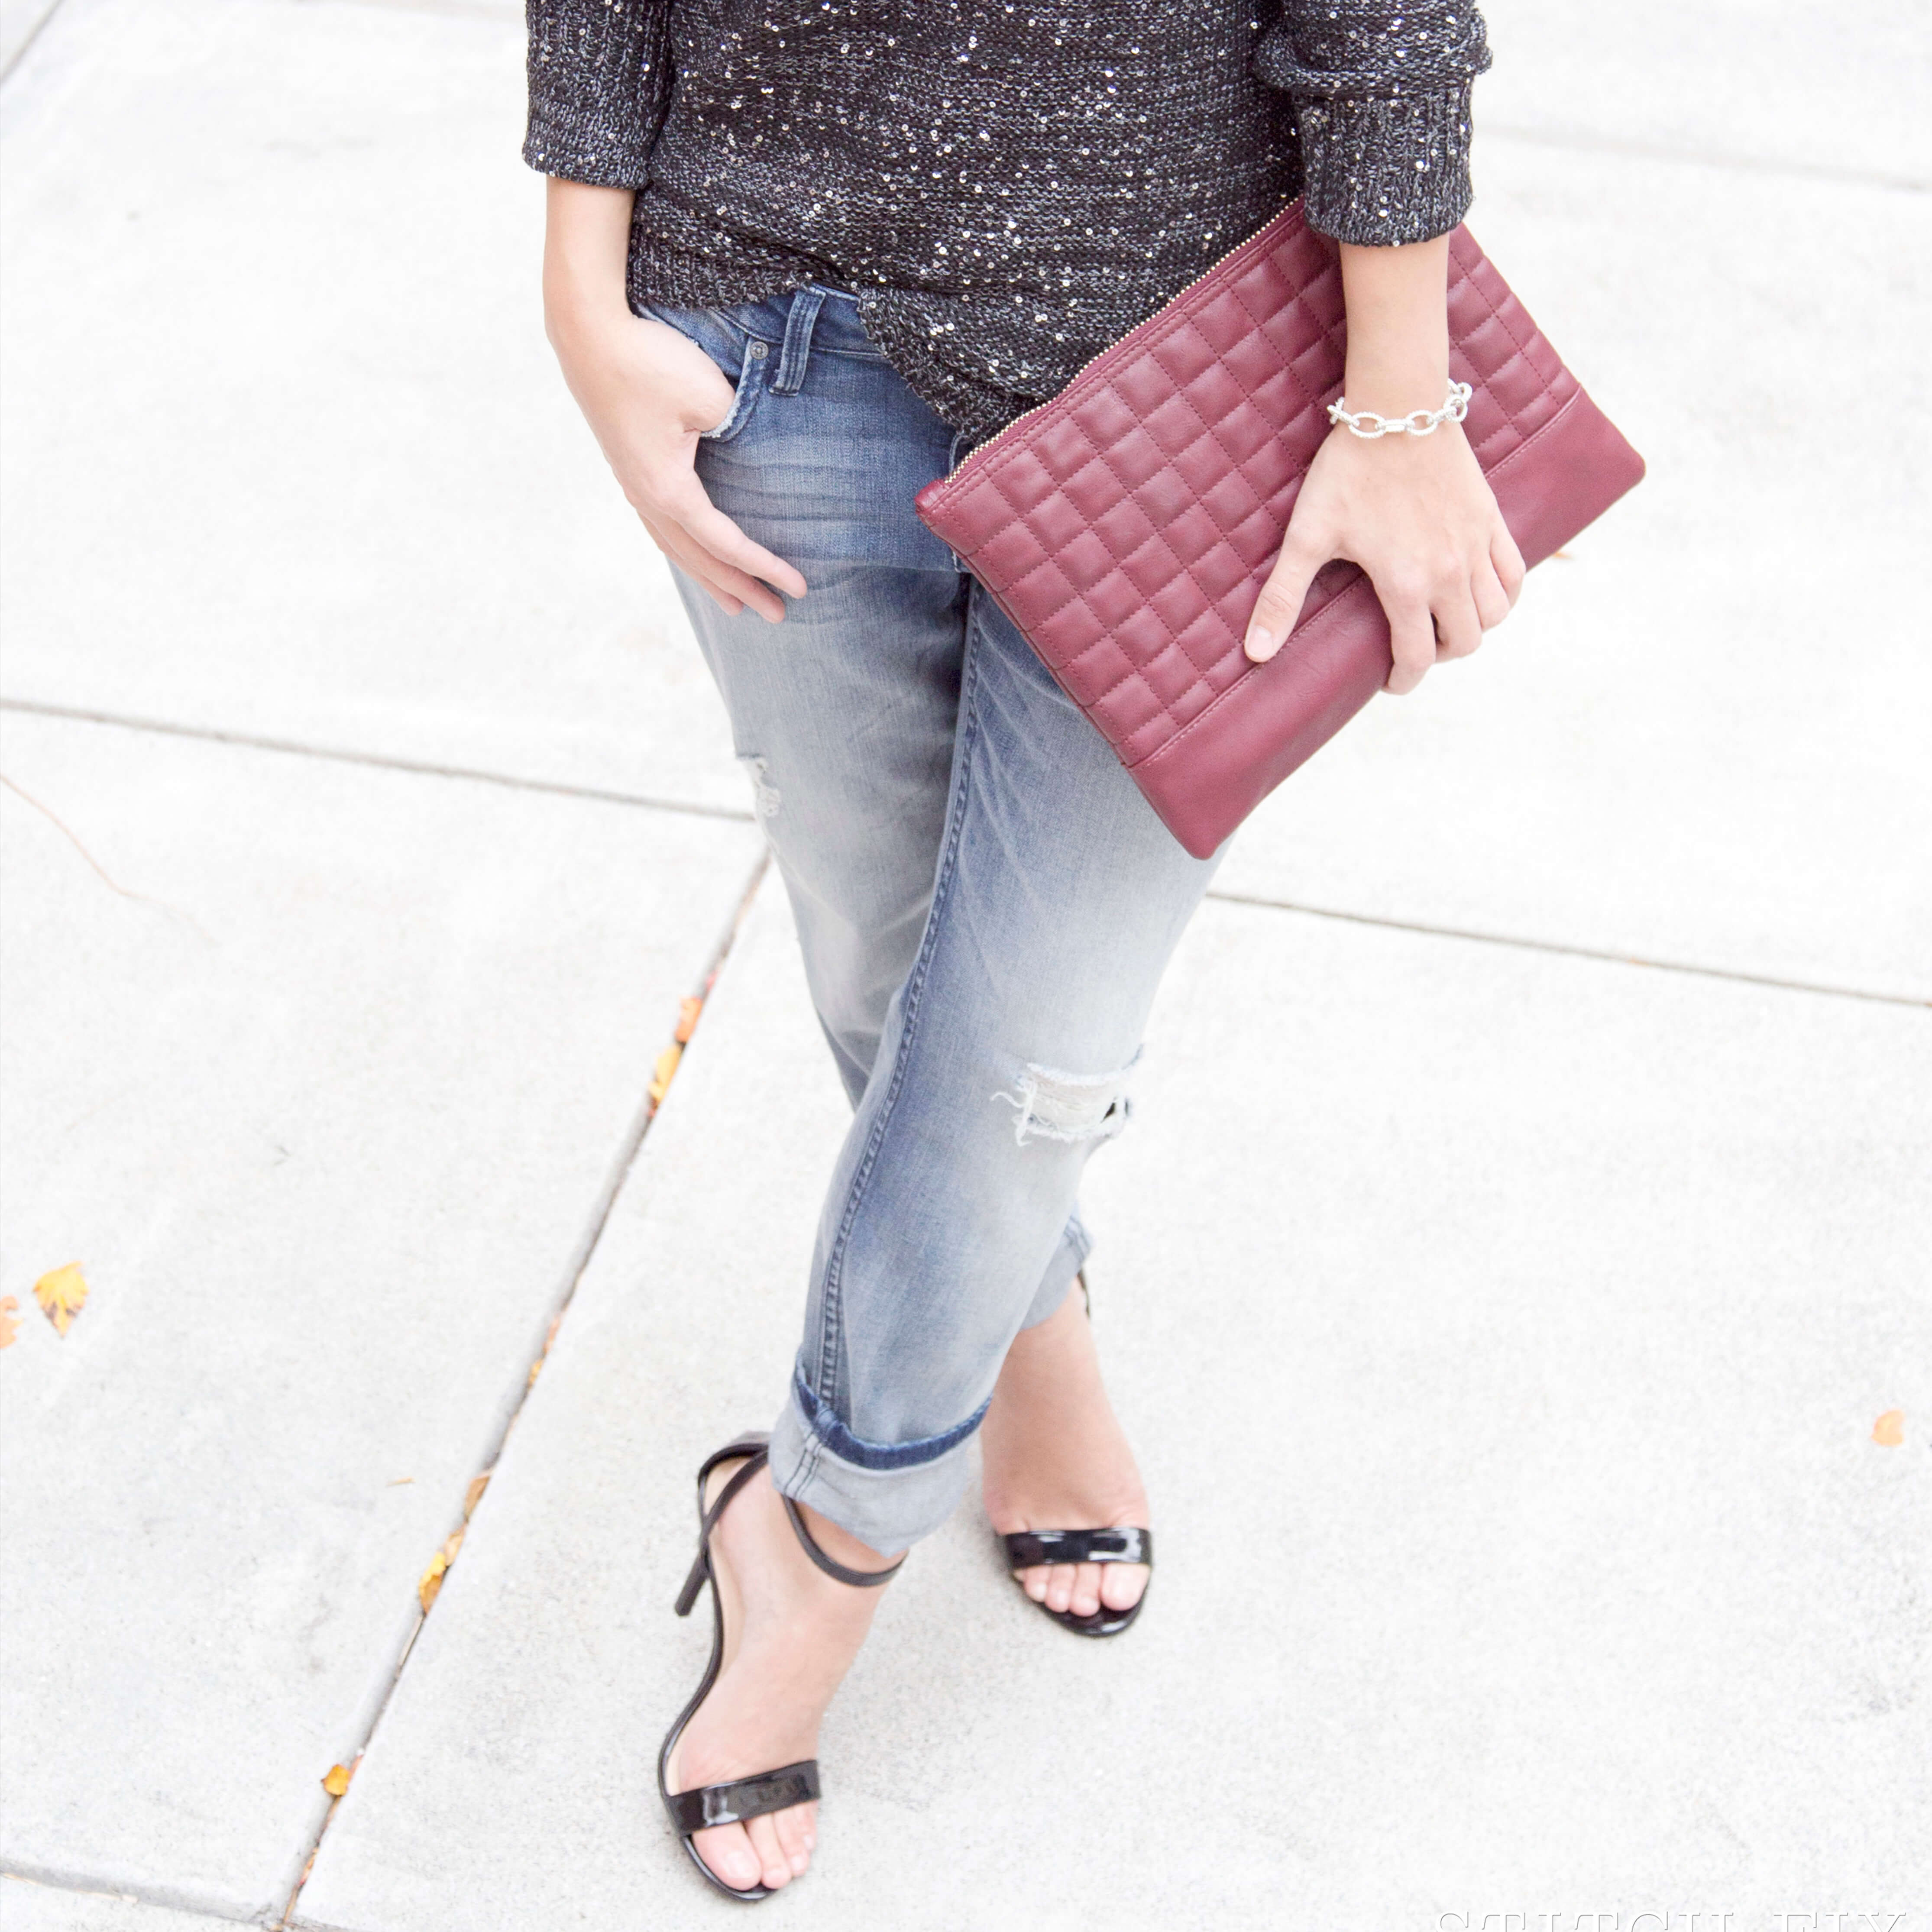 Shoes with Boyfriend Jeans